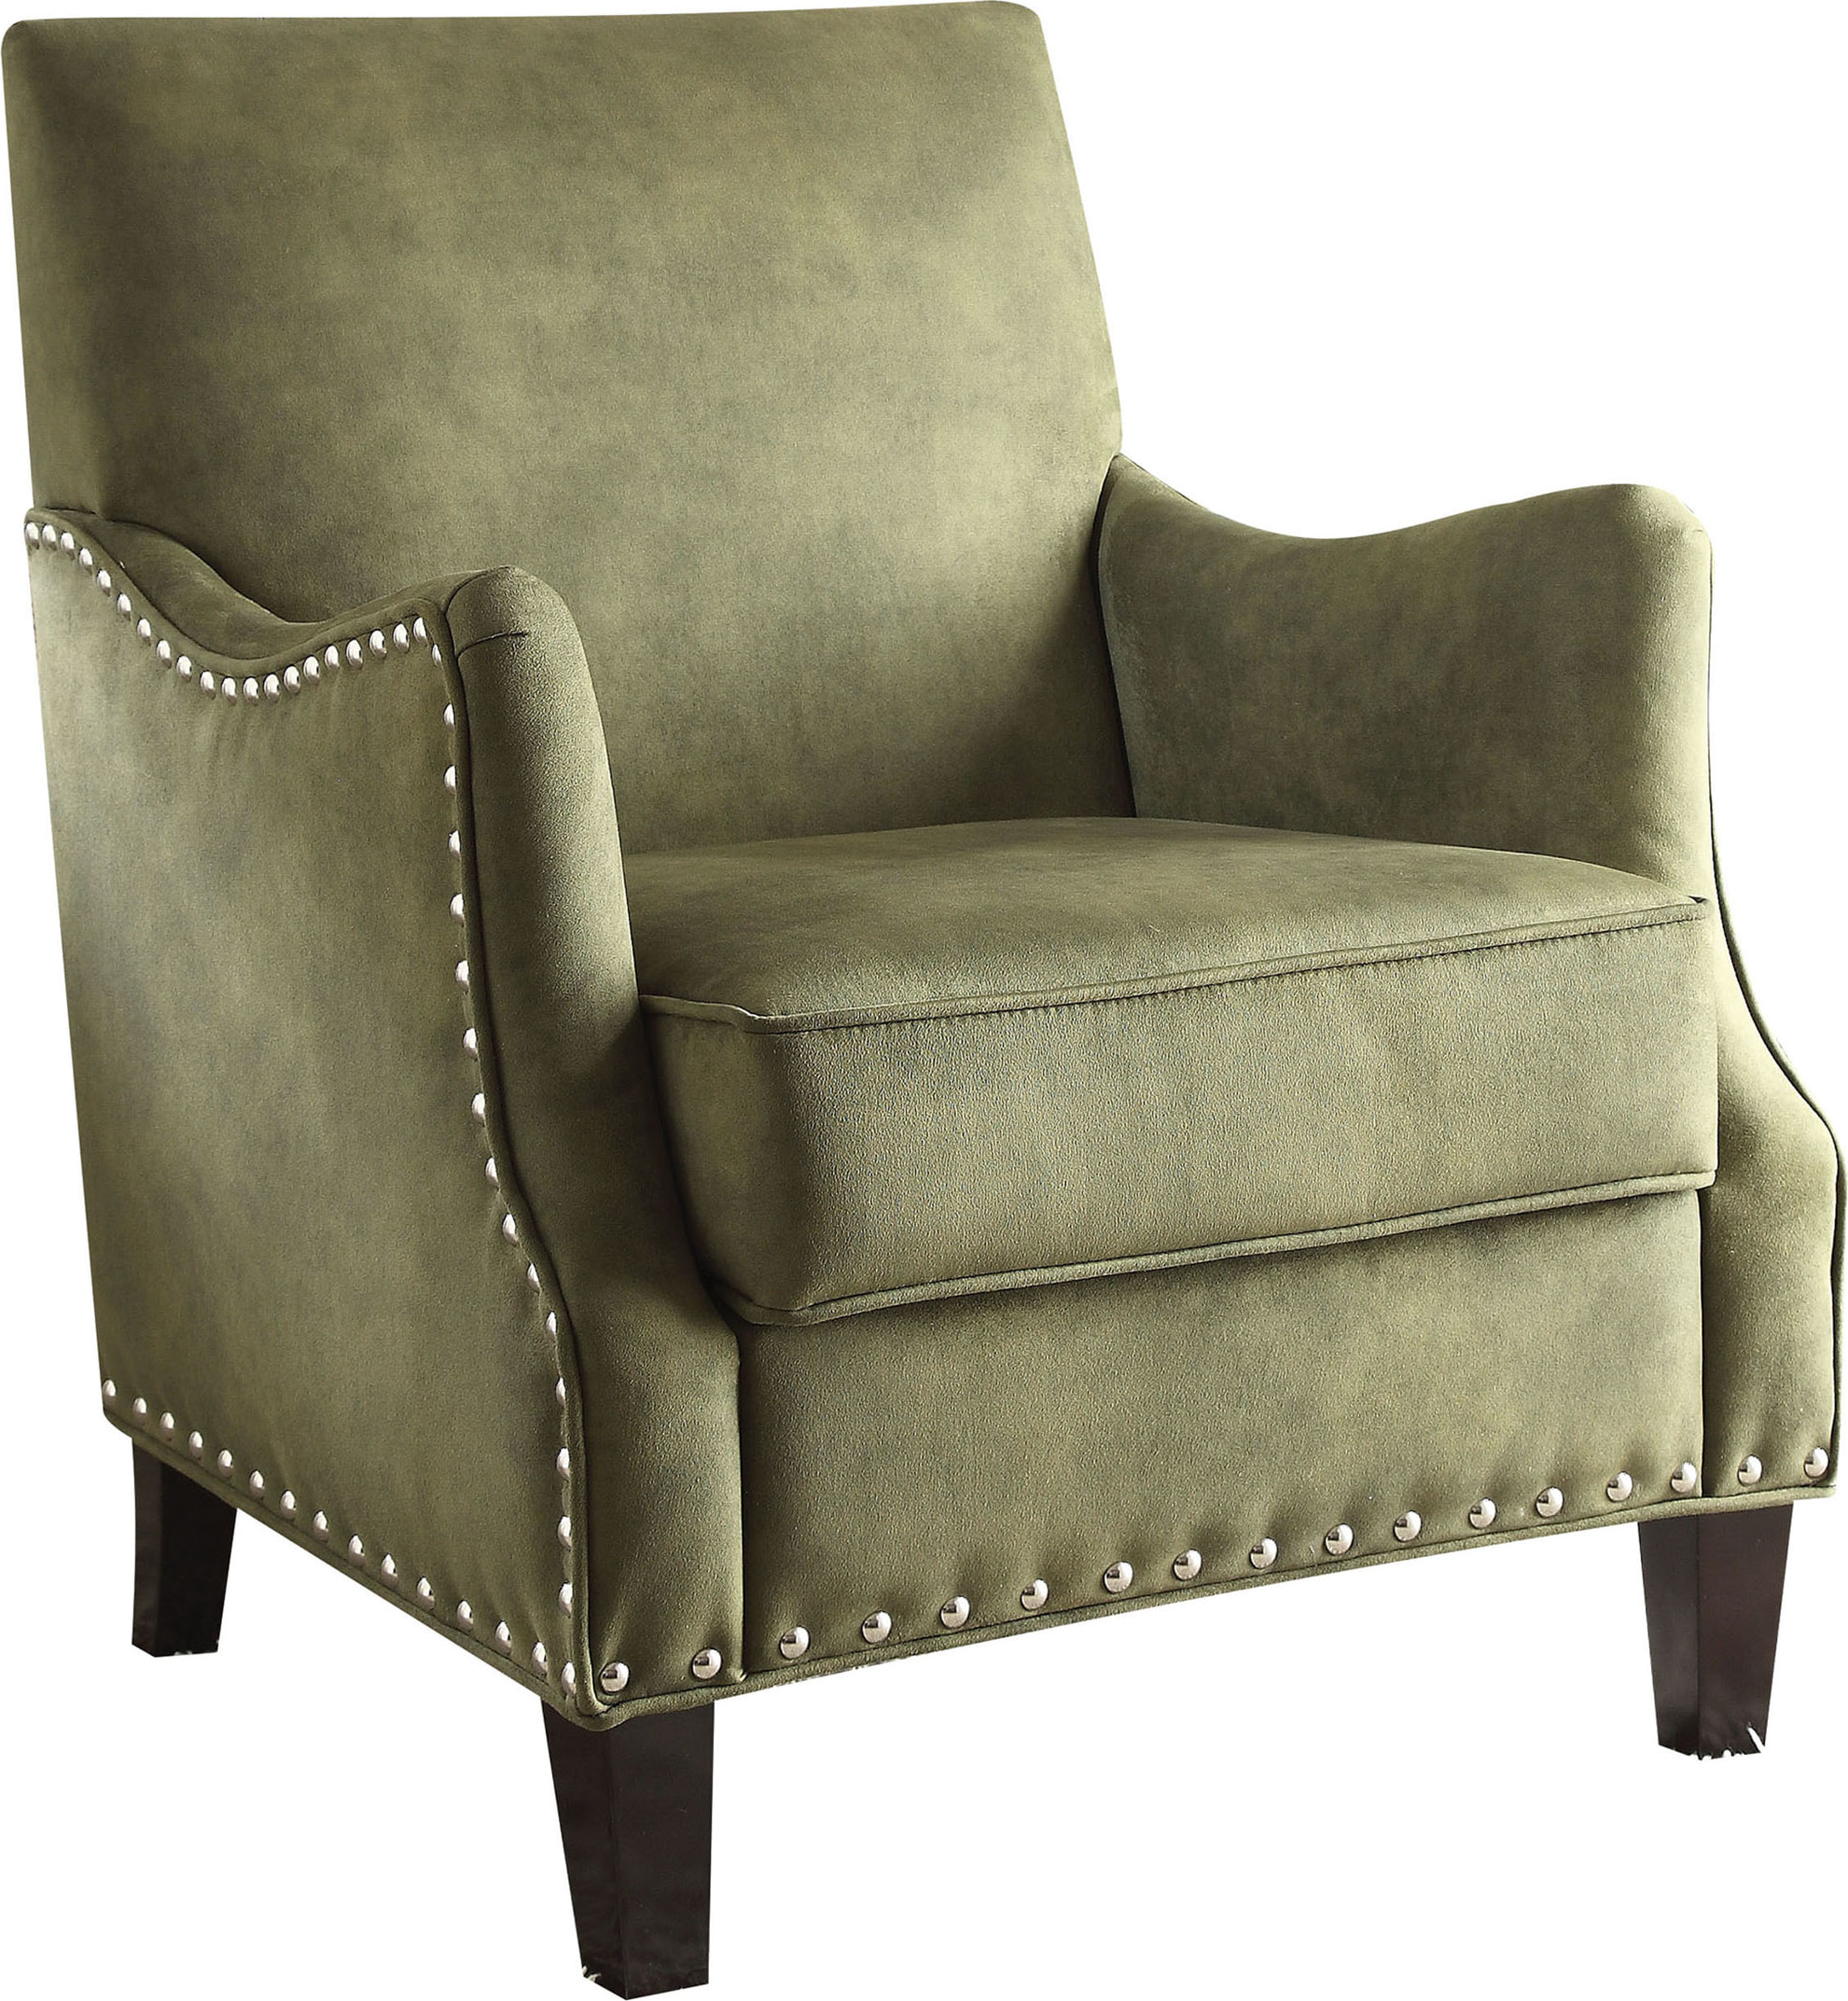 Sinai Accent Chair Hedgeapple